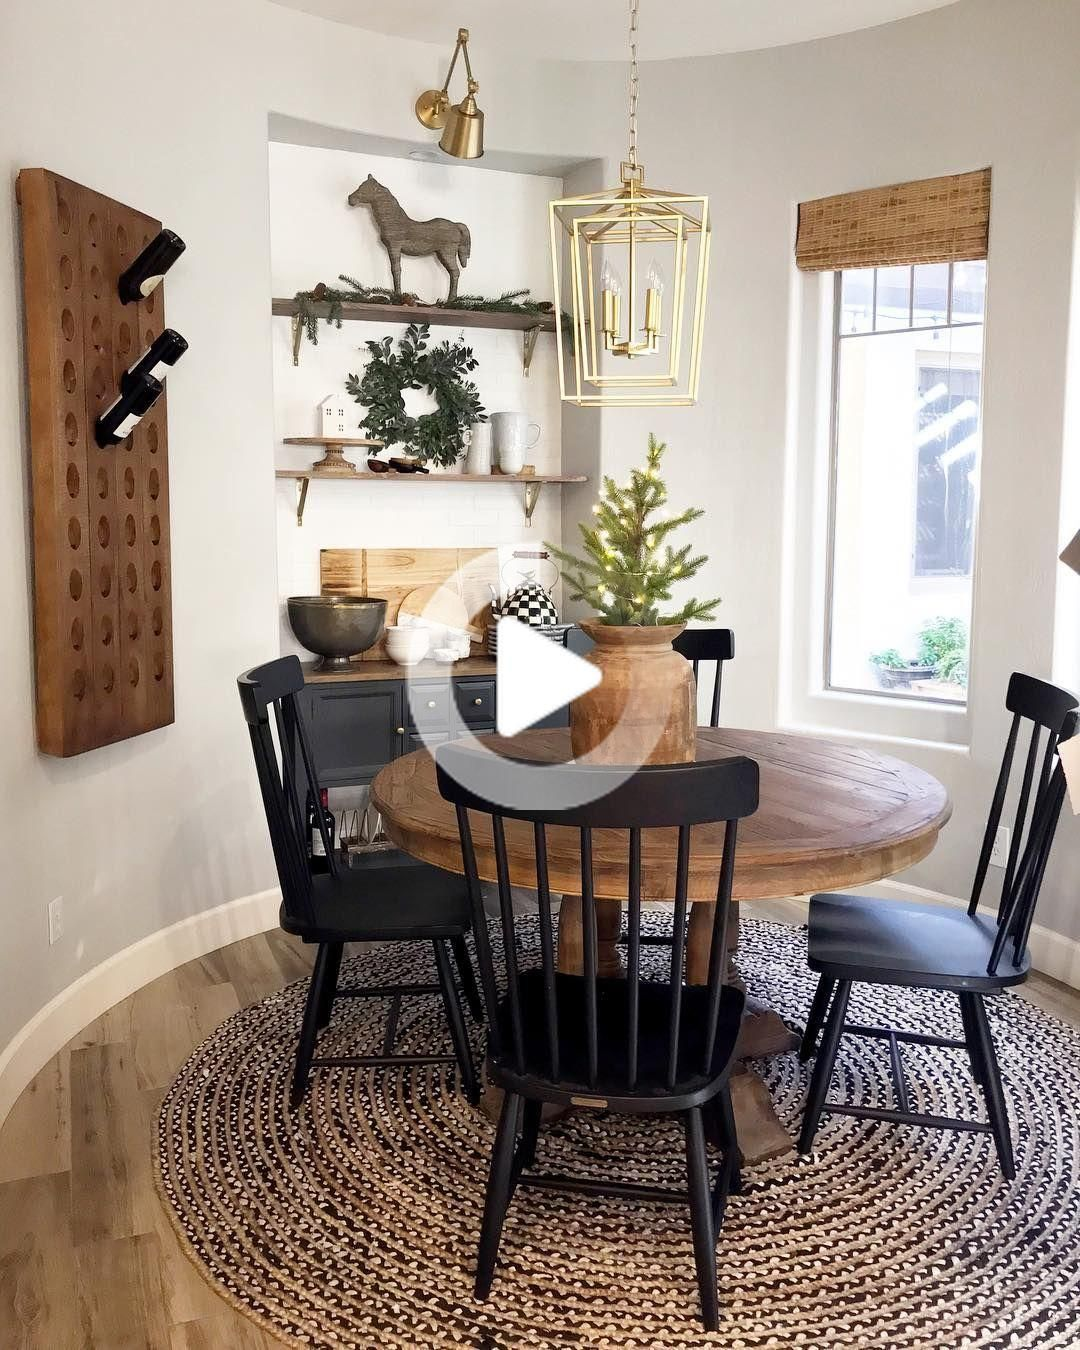 Chaise D Appoint Magnolia Home Spindle Back De Joanna Gaines Noir 199 In 2020 Side Chairs Dining Dining Room Small Round Dining Room